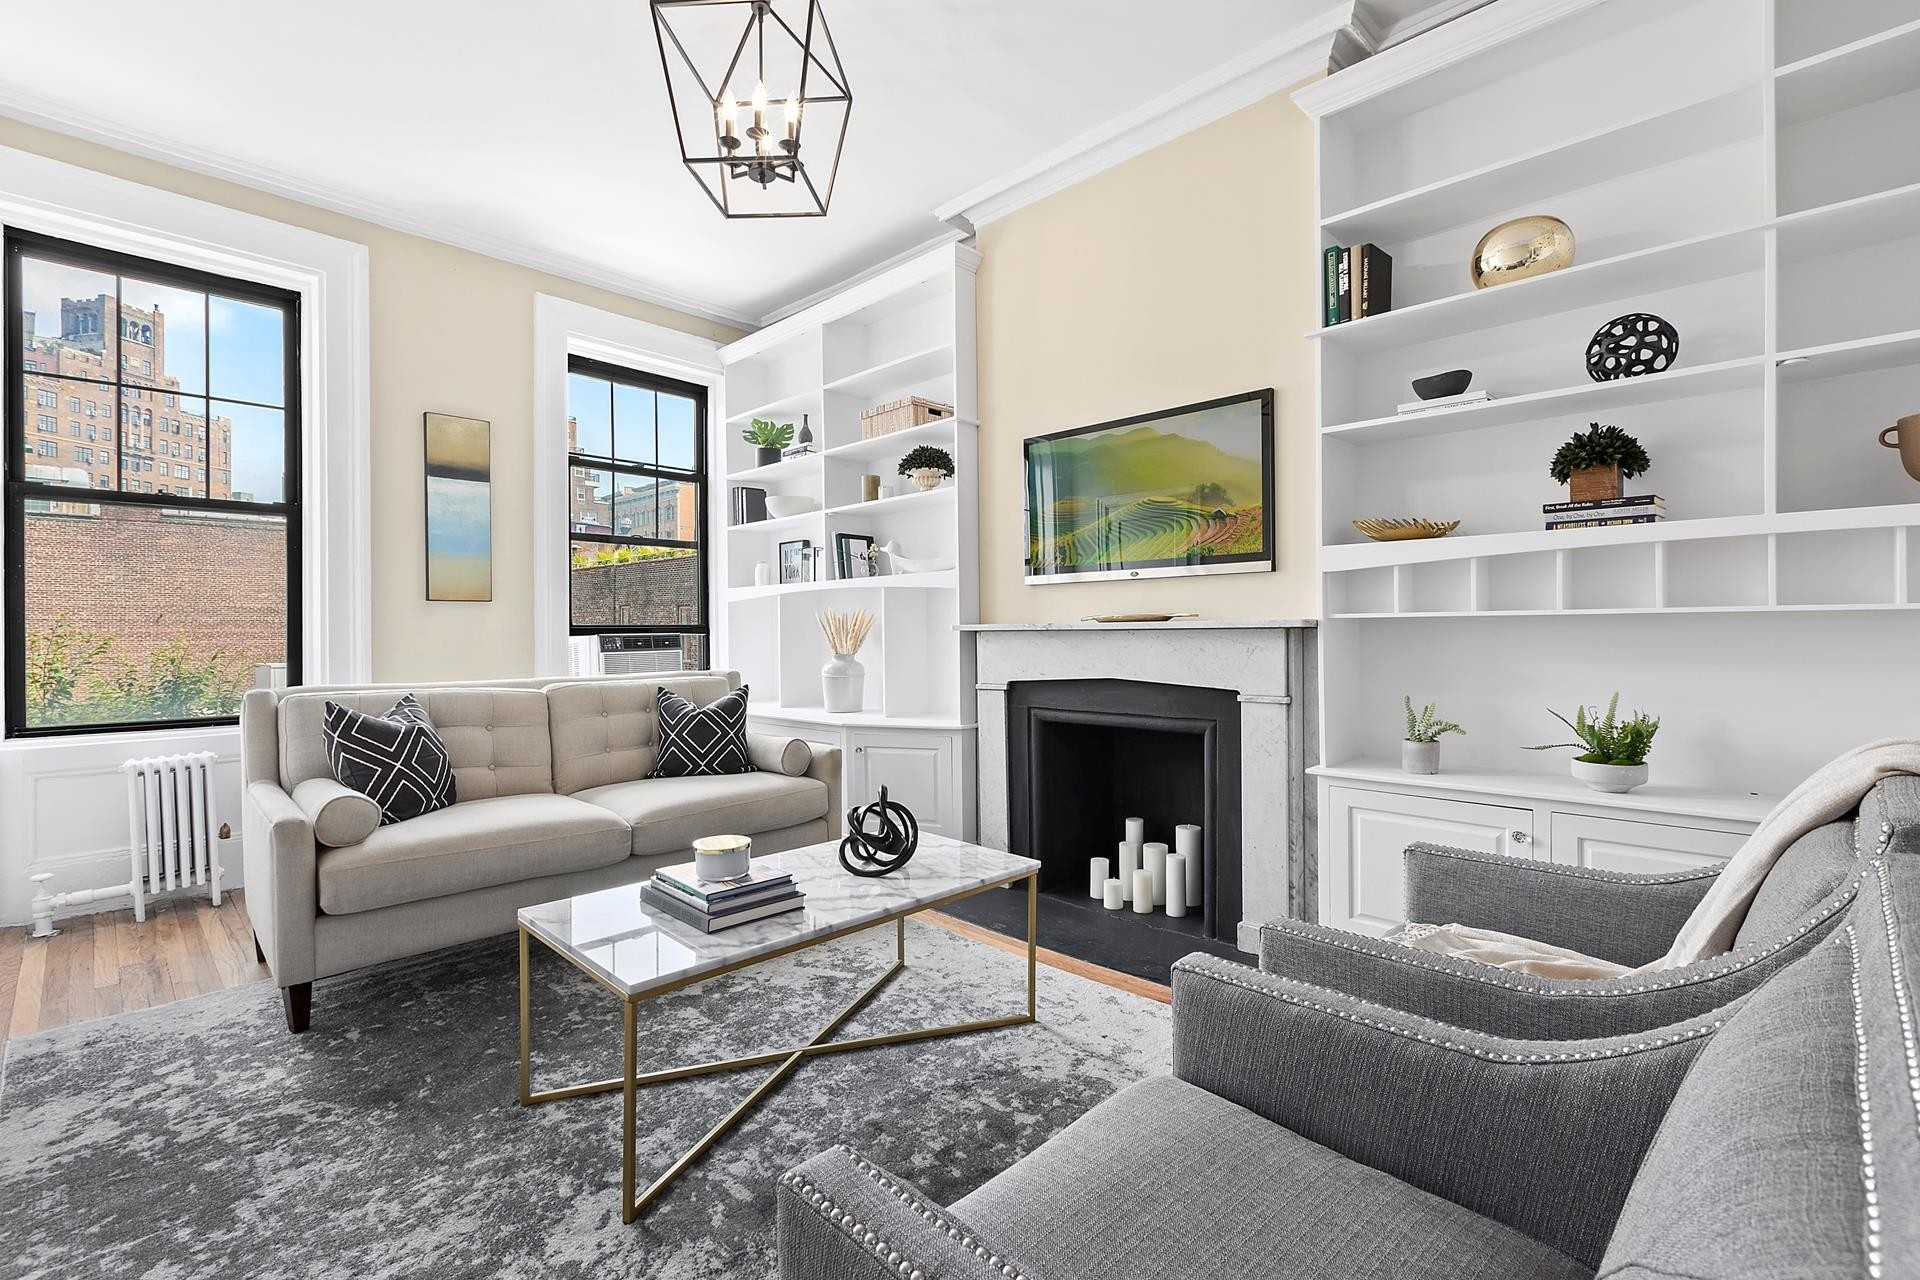 Property at 312 Bleecker St, 2B West Village, New York, NY 10014